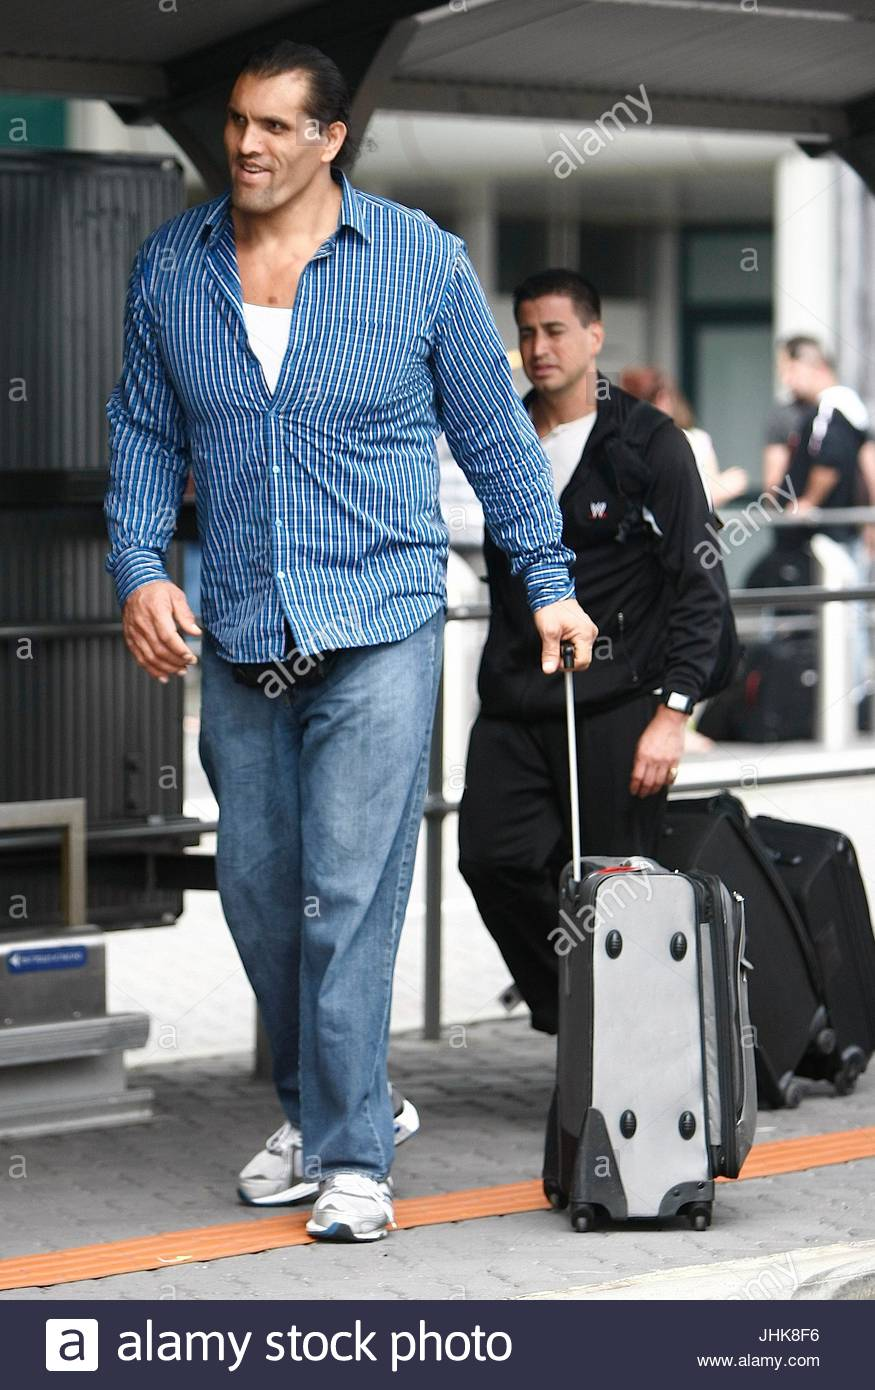 The great khali wwe wrestlers arrive into perth domestic airport the great khali wwe wrestlers arrive into perth domestic airport in perth western australia voltagebd Image collections